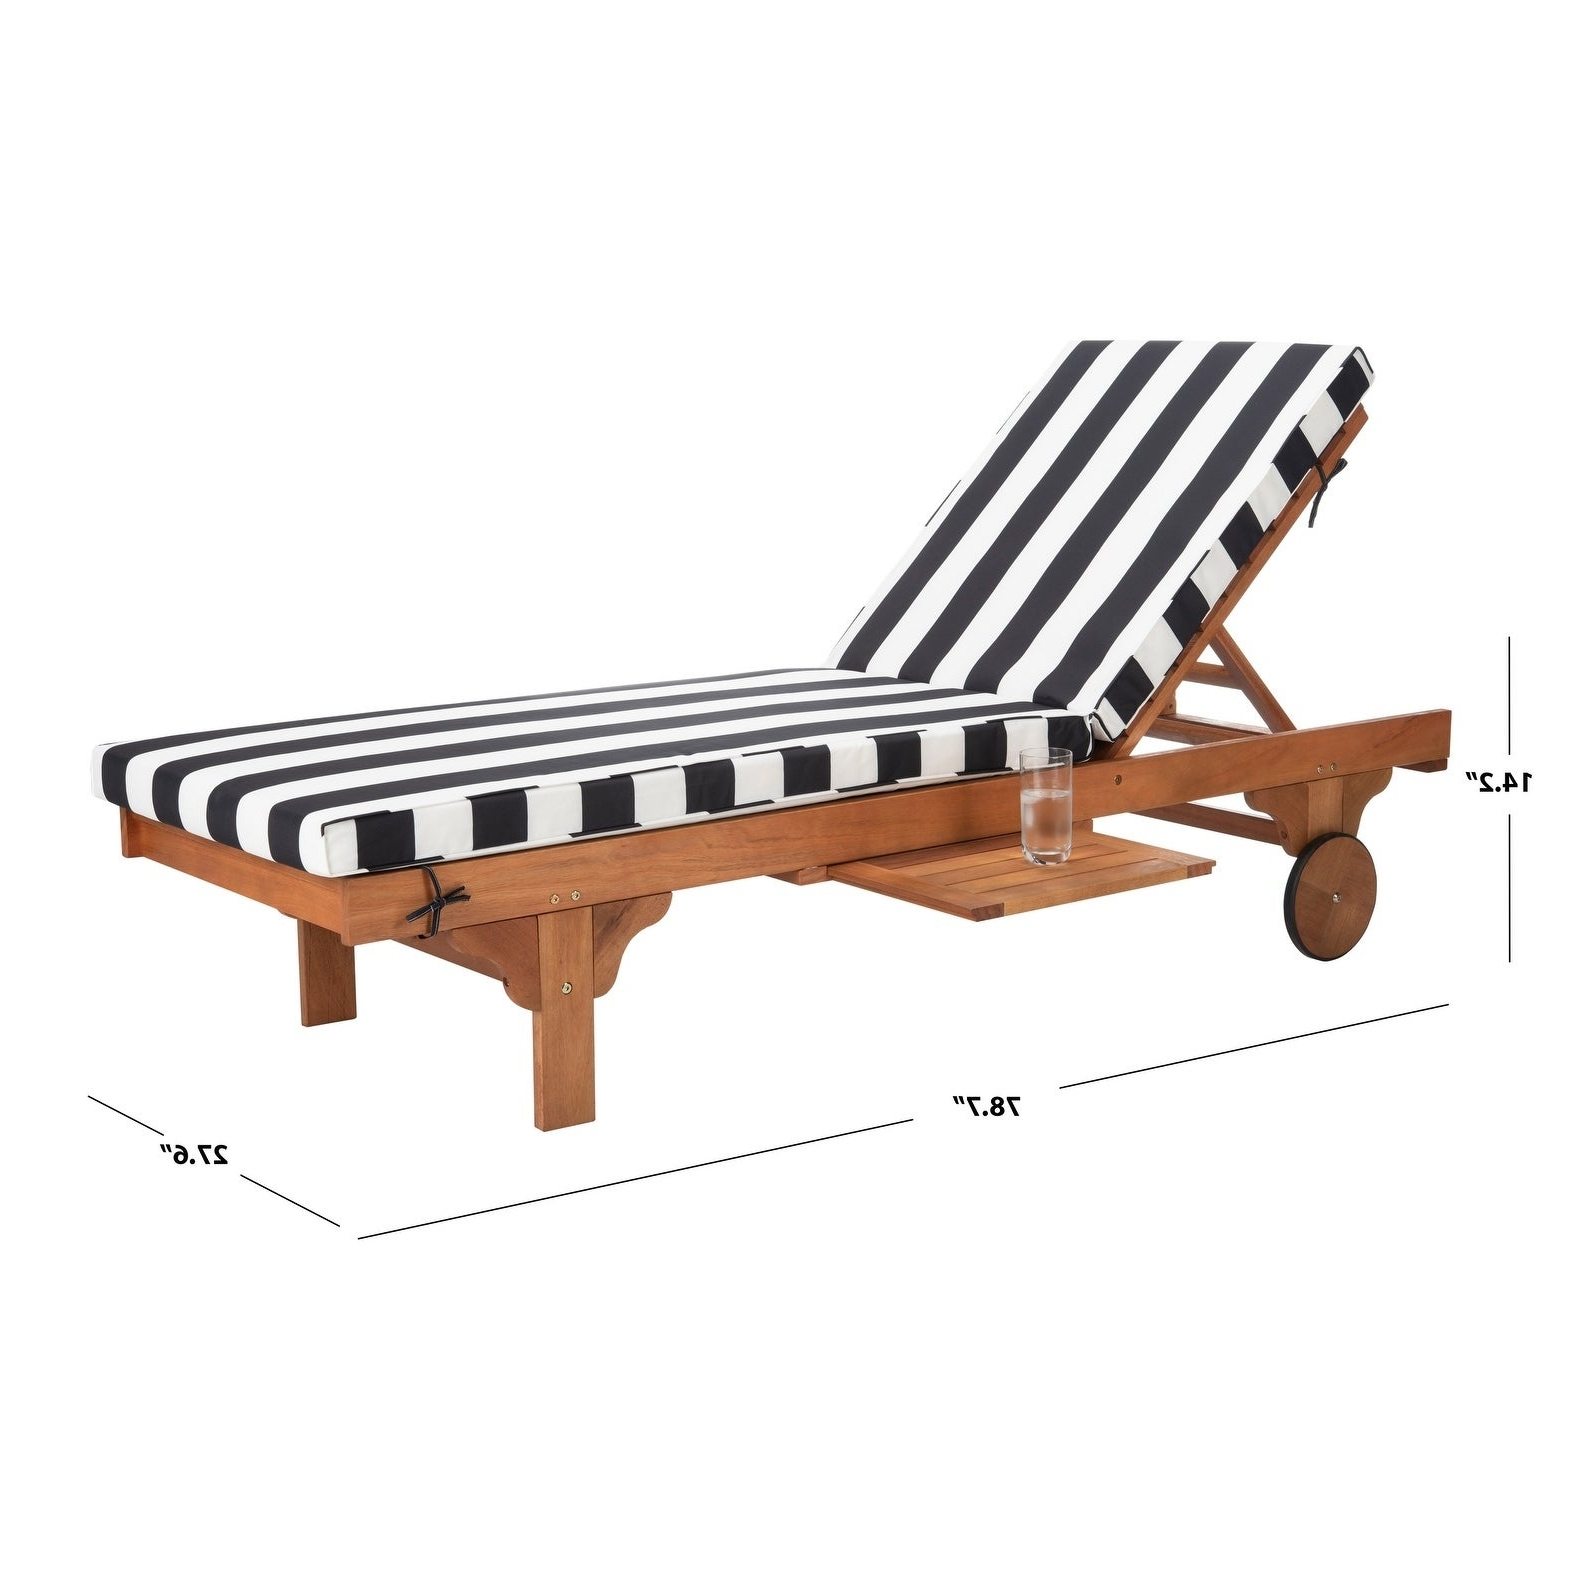 "2020 Outdoor Cart Wheel Adjustable Chaise Lounge Chairs Intended For Safavieh Outdoor Living Newport Ash Black/ White Stripe Cart Wheel Adjustable Chaise Lounge Chair – 27.6"" X 78.7"" X (View 5 of 25)"